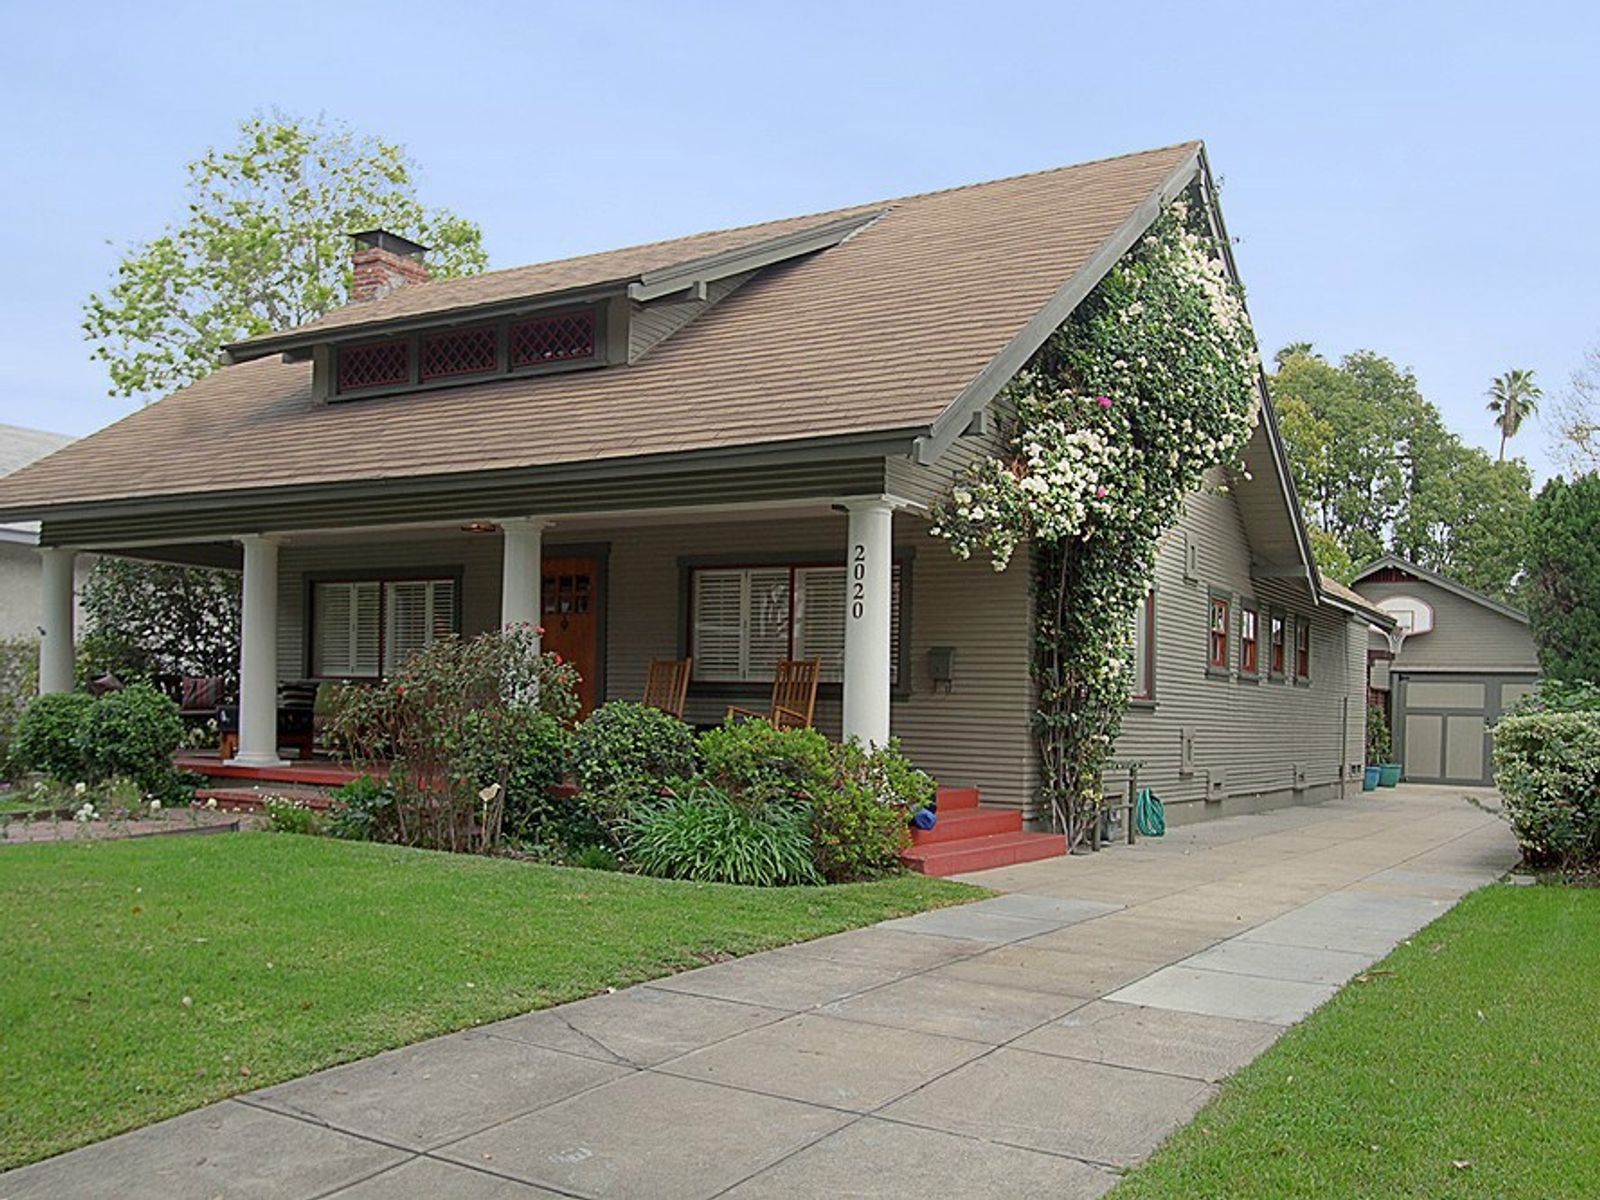 California Bungalow, South Pasadena CA Single Family Home - Pasadena Real Estate